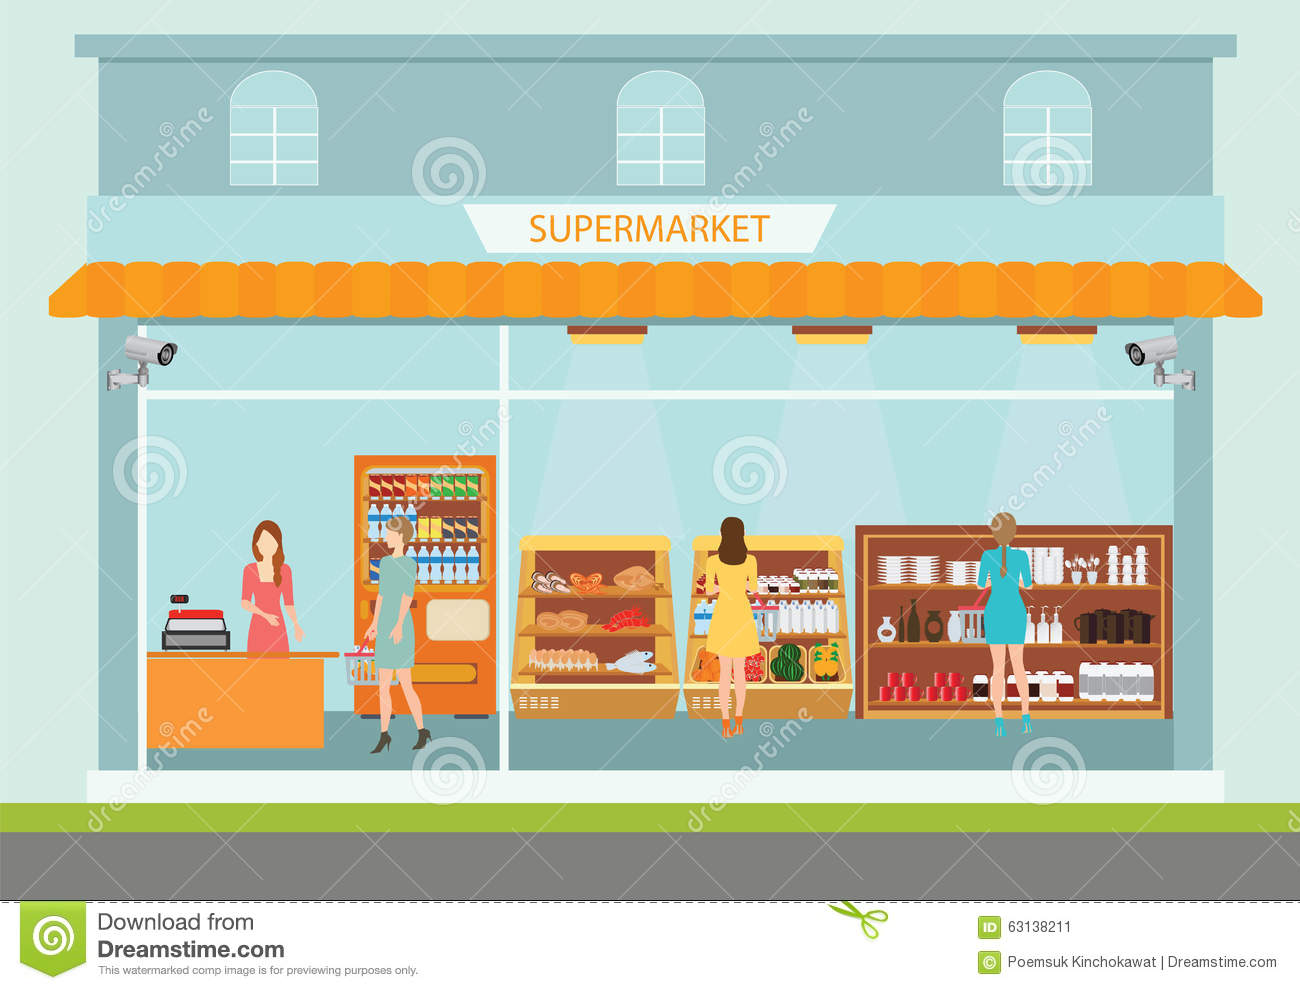 Supermarket Building And Interior With People Buying